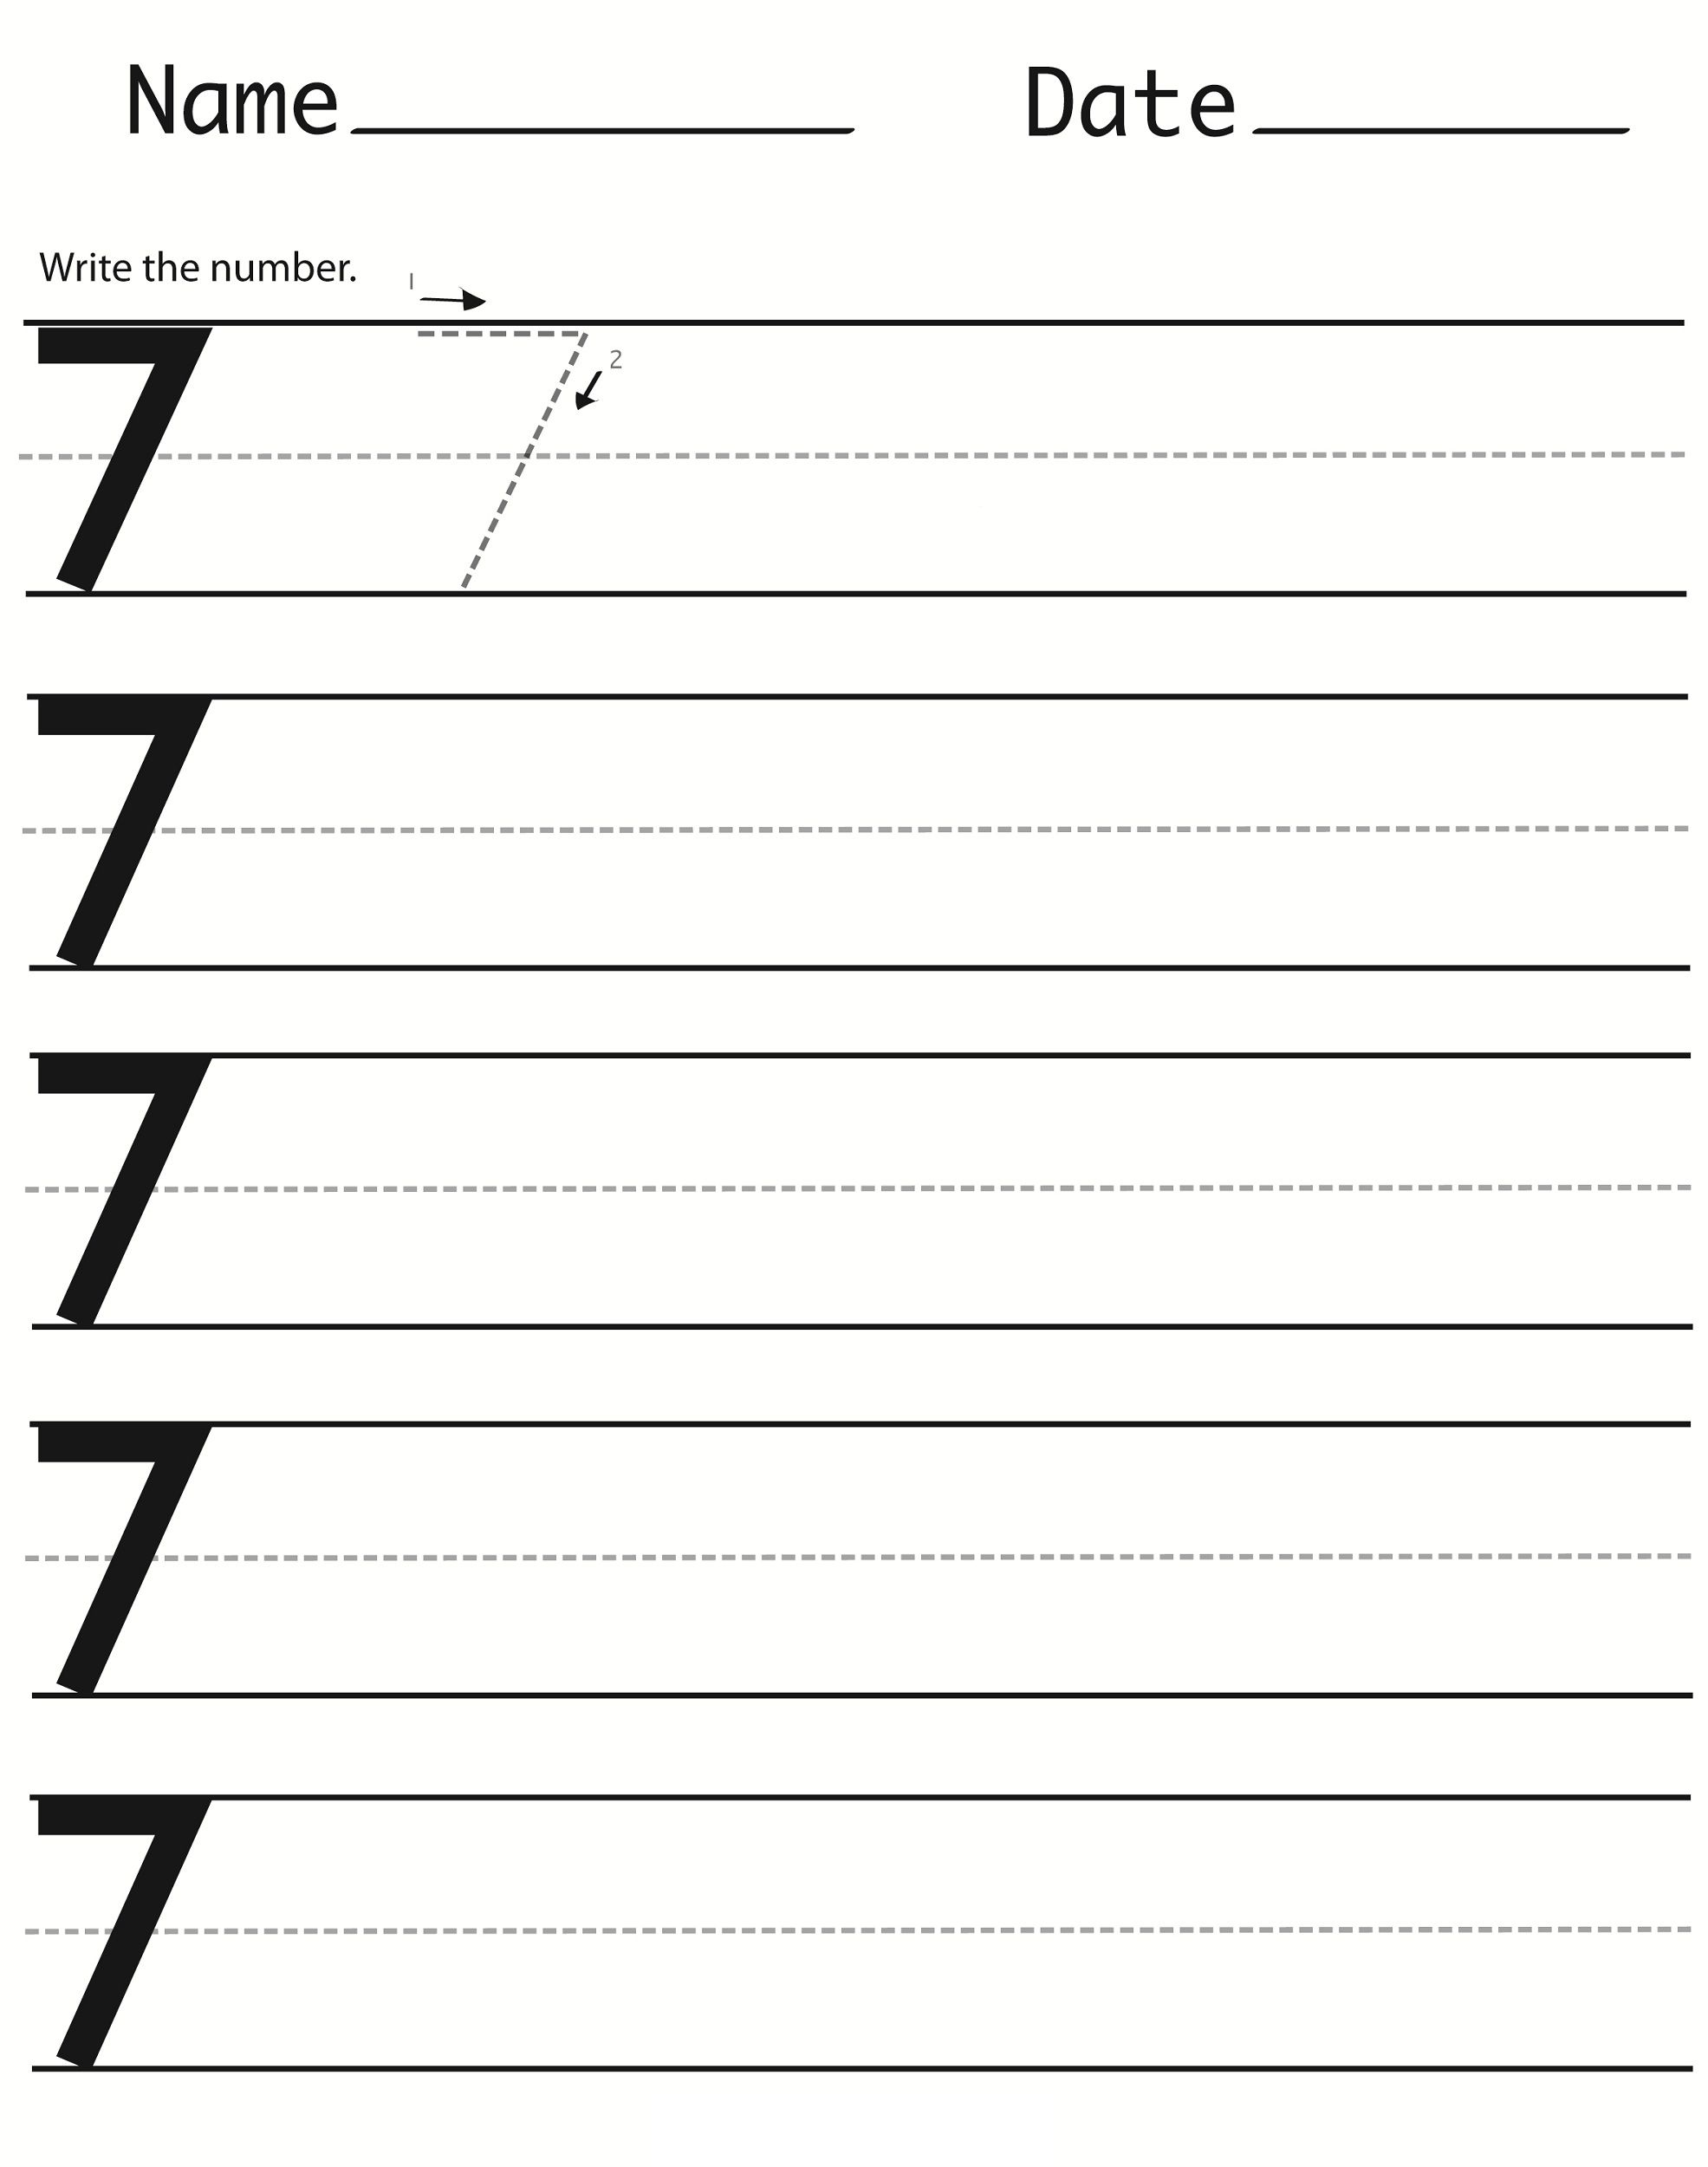 Kite Preschool Number 7 Worksheet